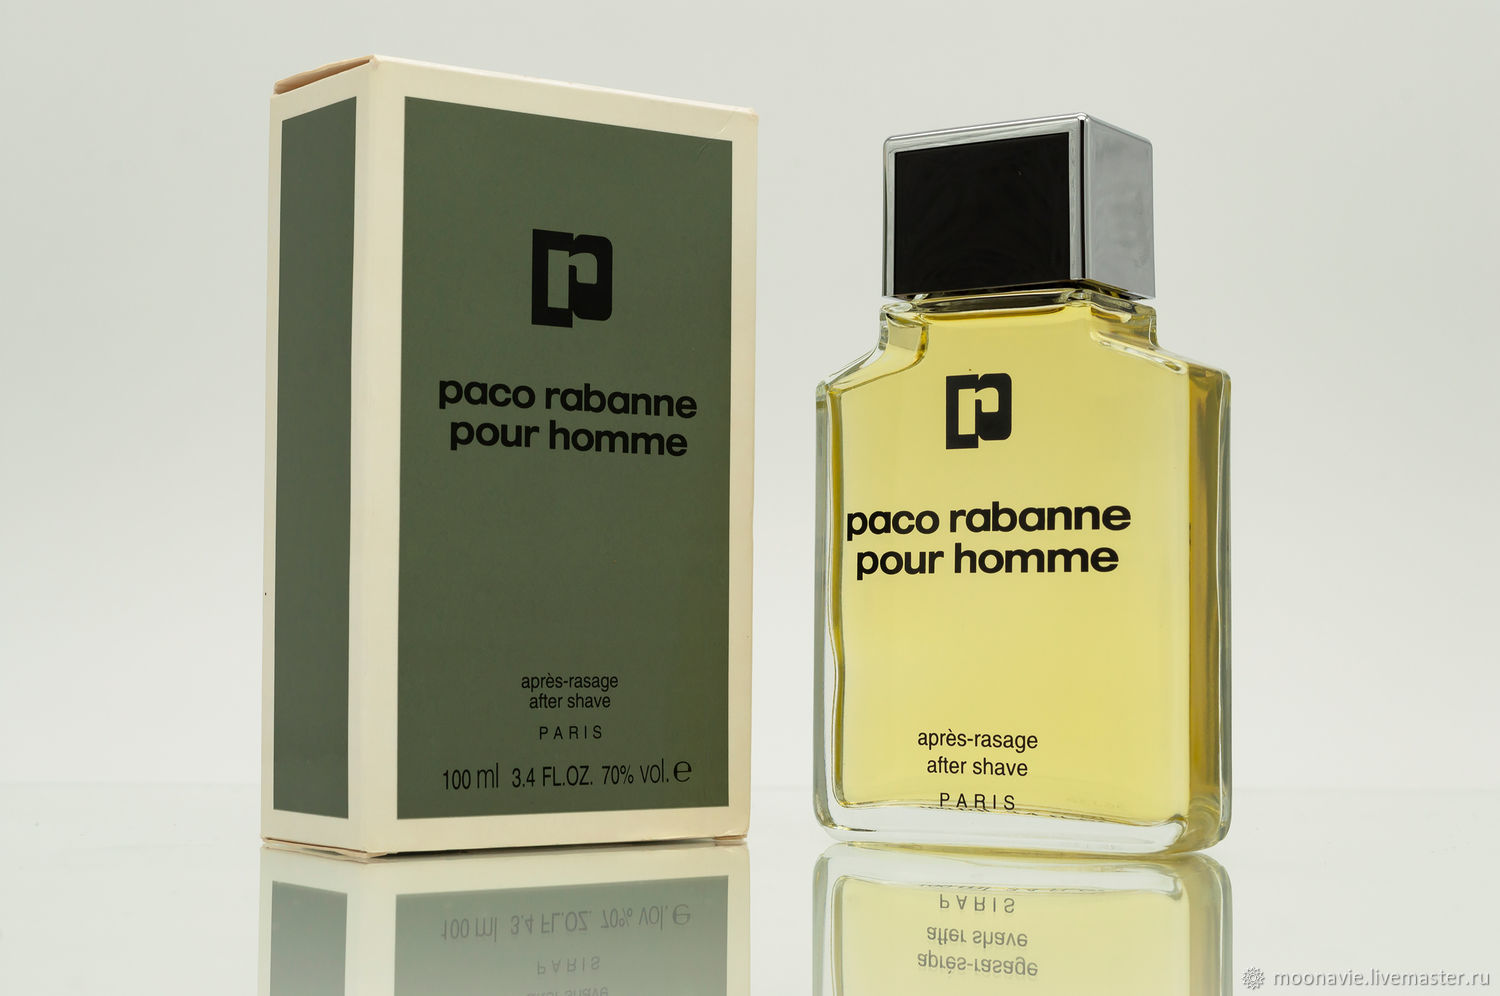 PACO RABANNE POUR HOMME (PACO RABANNE) shaving lotion 100 ml VINTAGE, Vintage perfume, St. Petersburg,  Фото №1